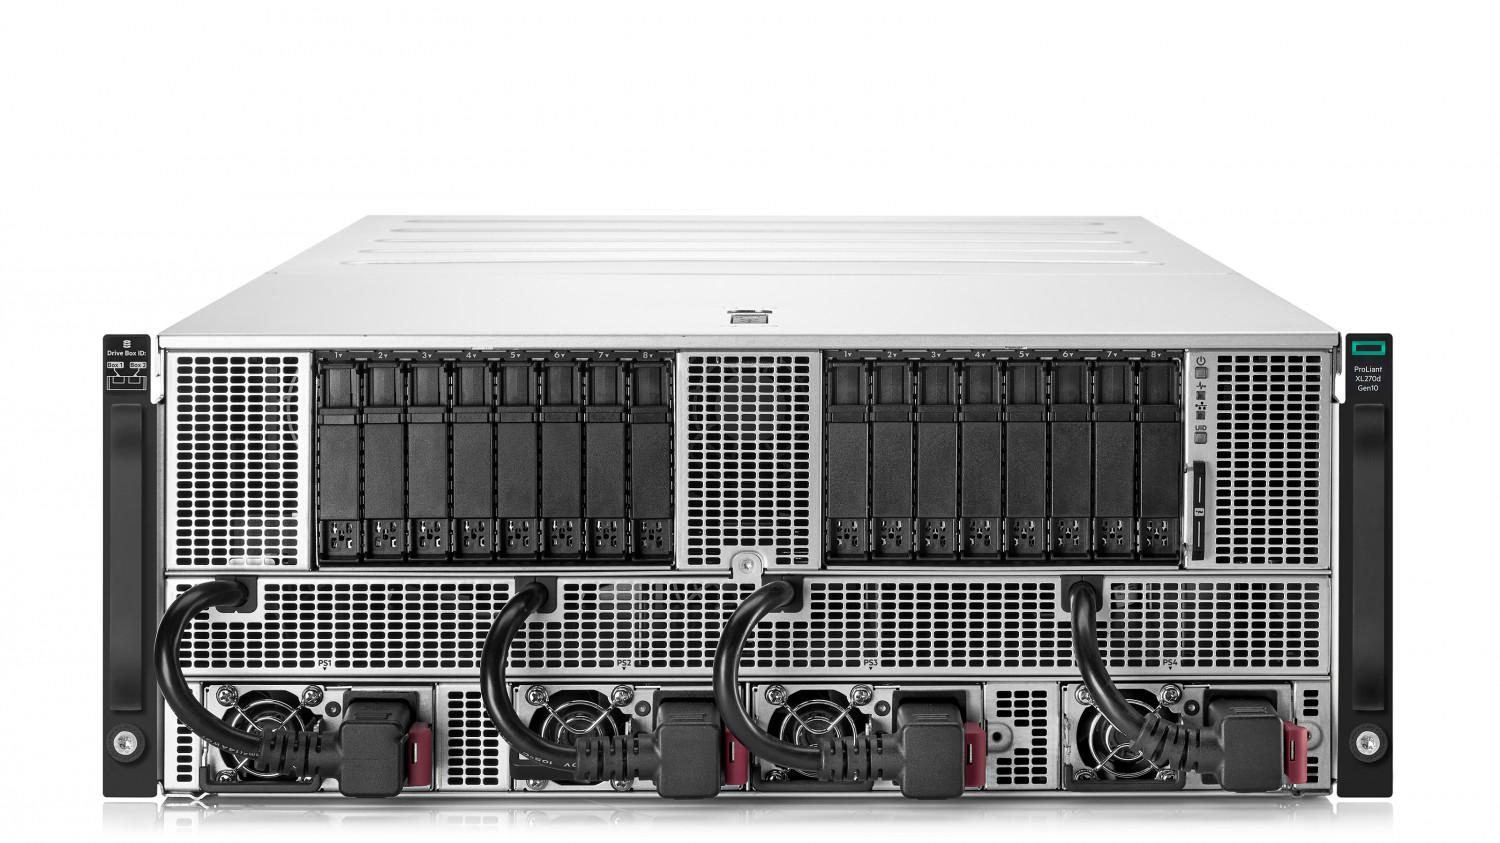 HPE Apollo 6500 Gen10 System Infographic